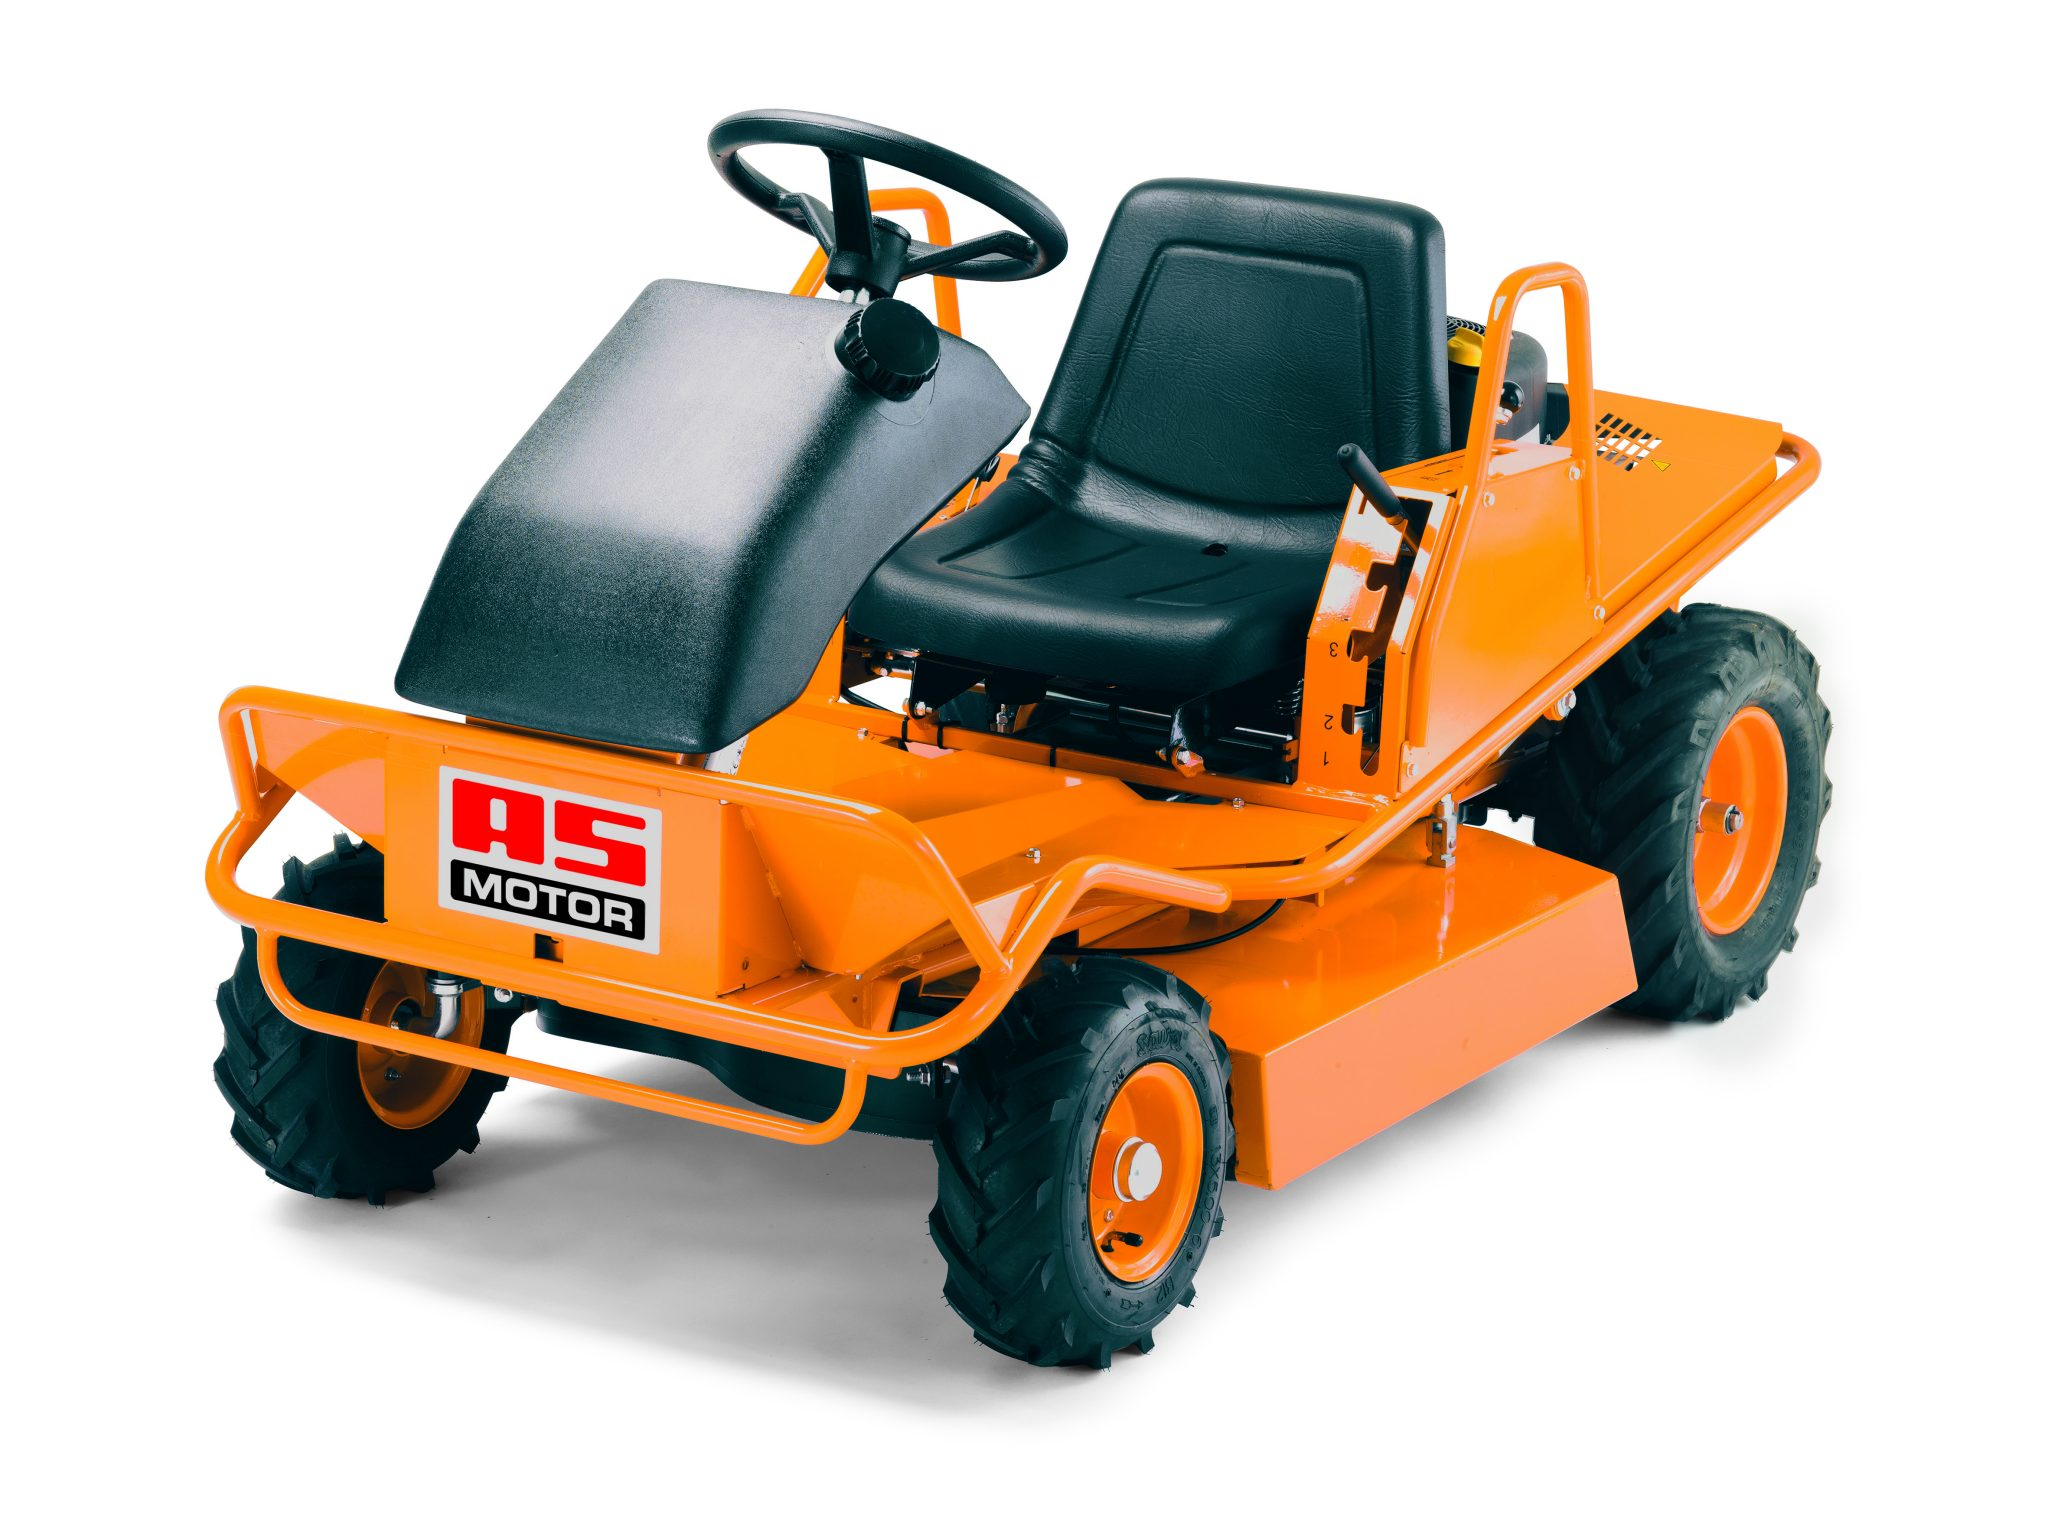 AS Motor 799 Rider Ride-on Mower Image